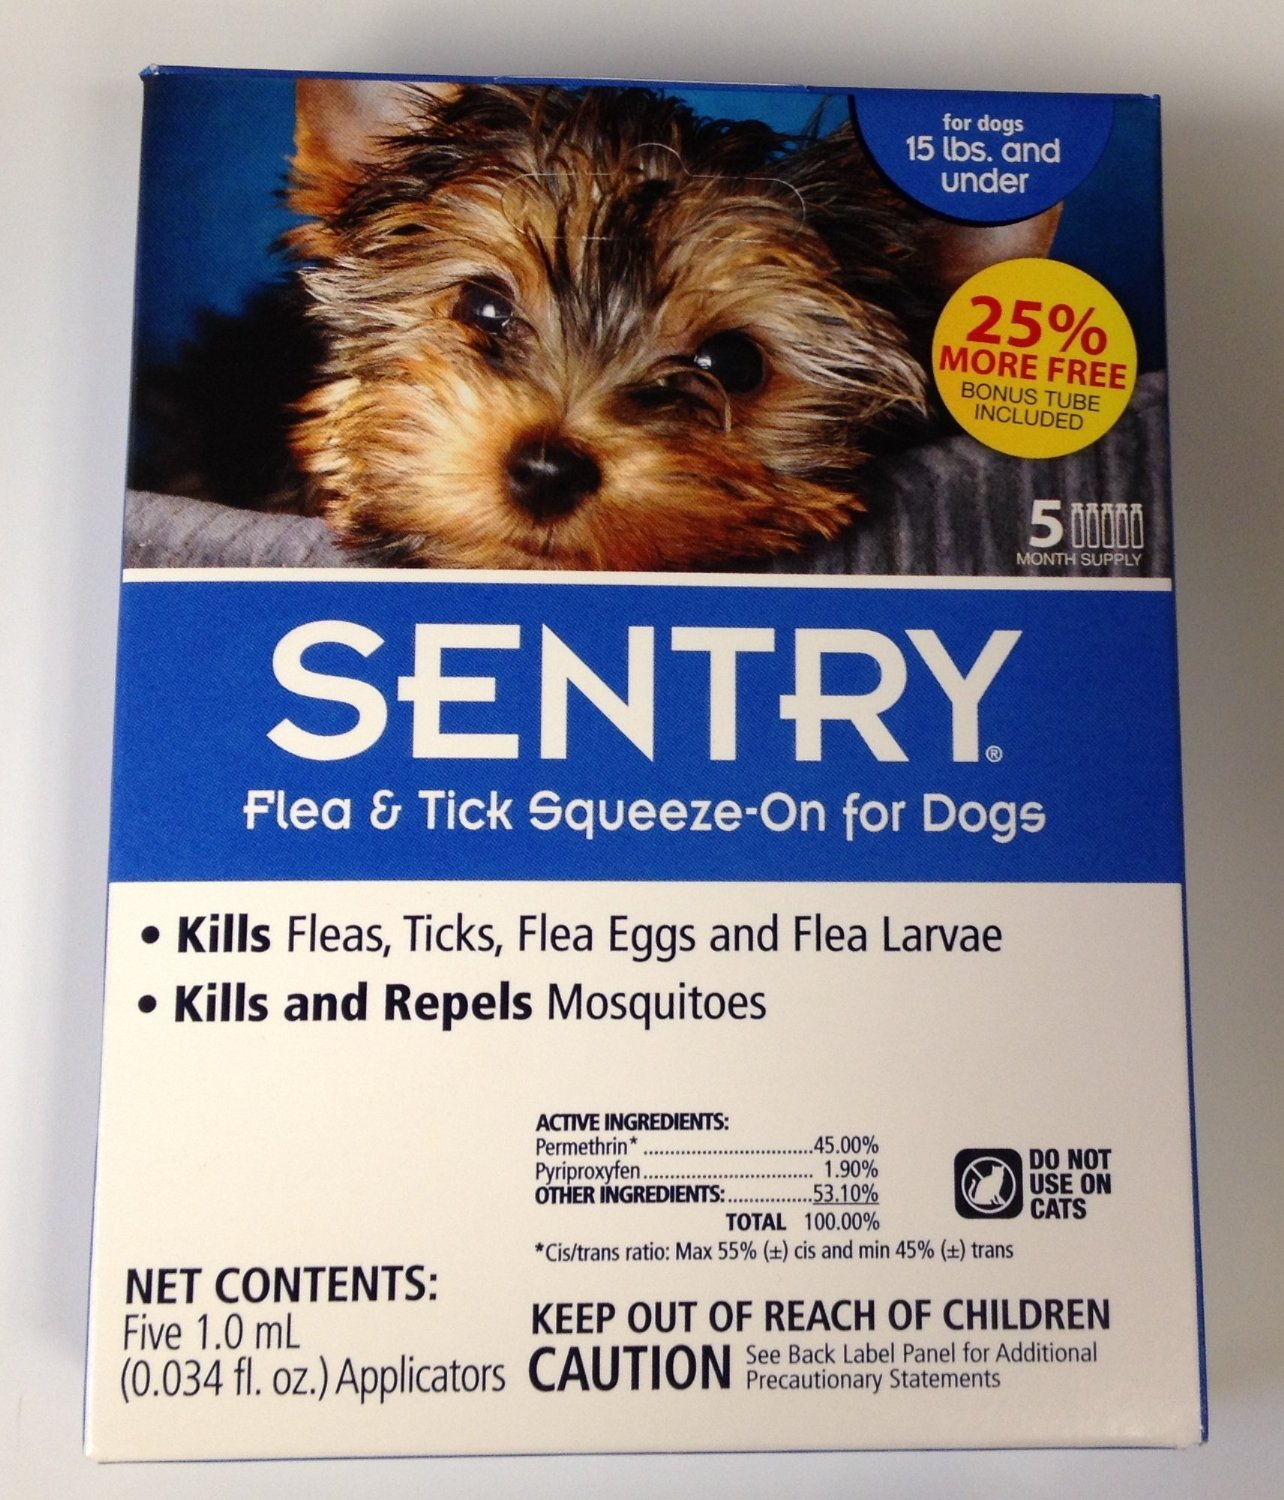 Sentry Sergeants Pet Care Product 5 Count Flea and Tick Squeeze-On Dog Drop.